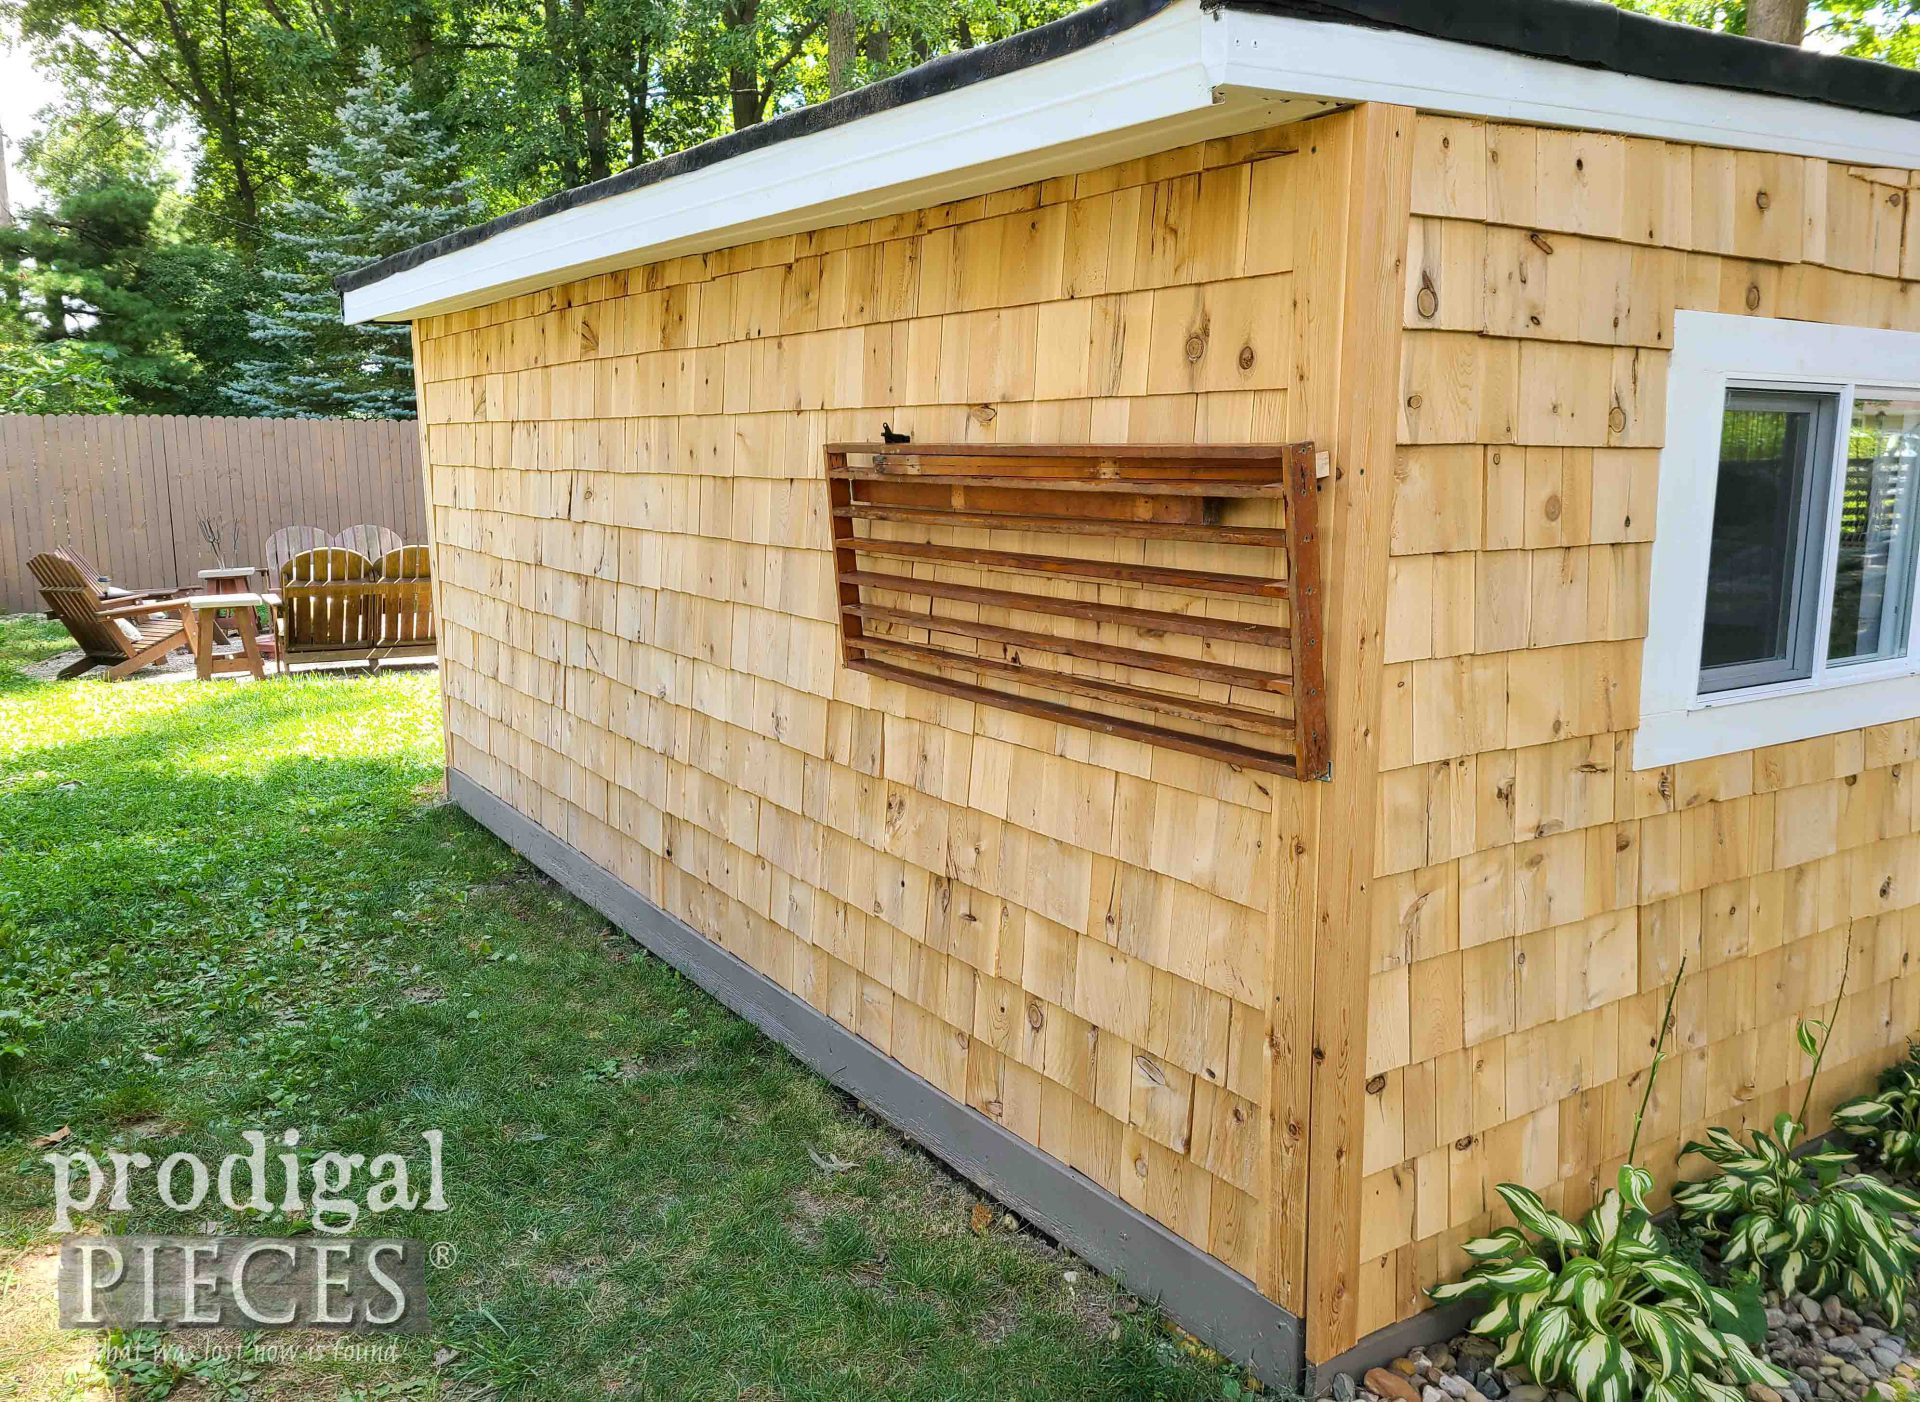 First DIY Folding Potting Bench attached to Garden Shed | prodigalpieces.com